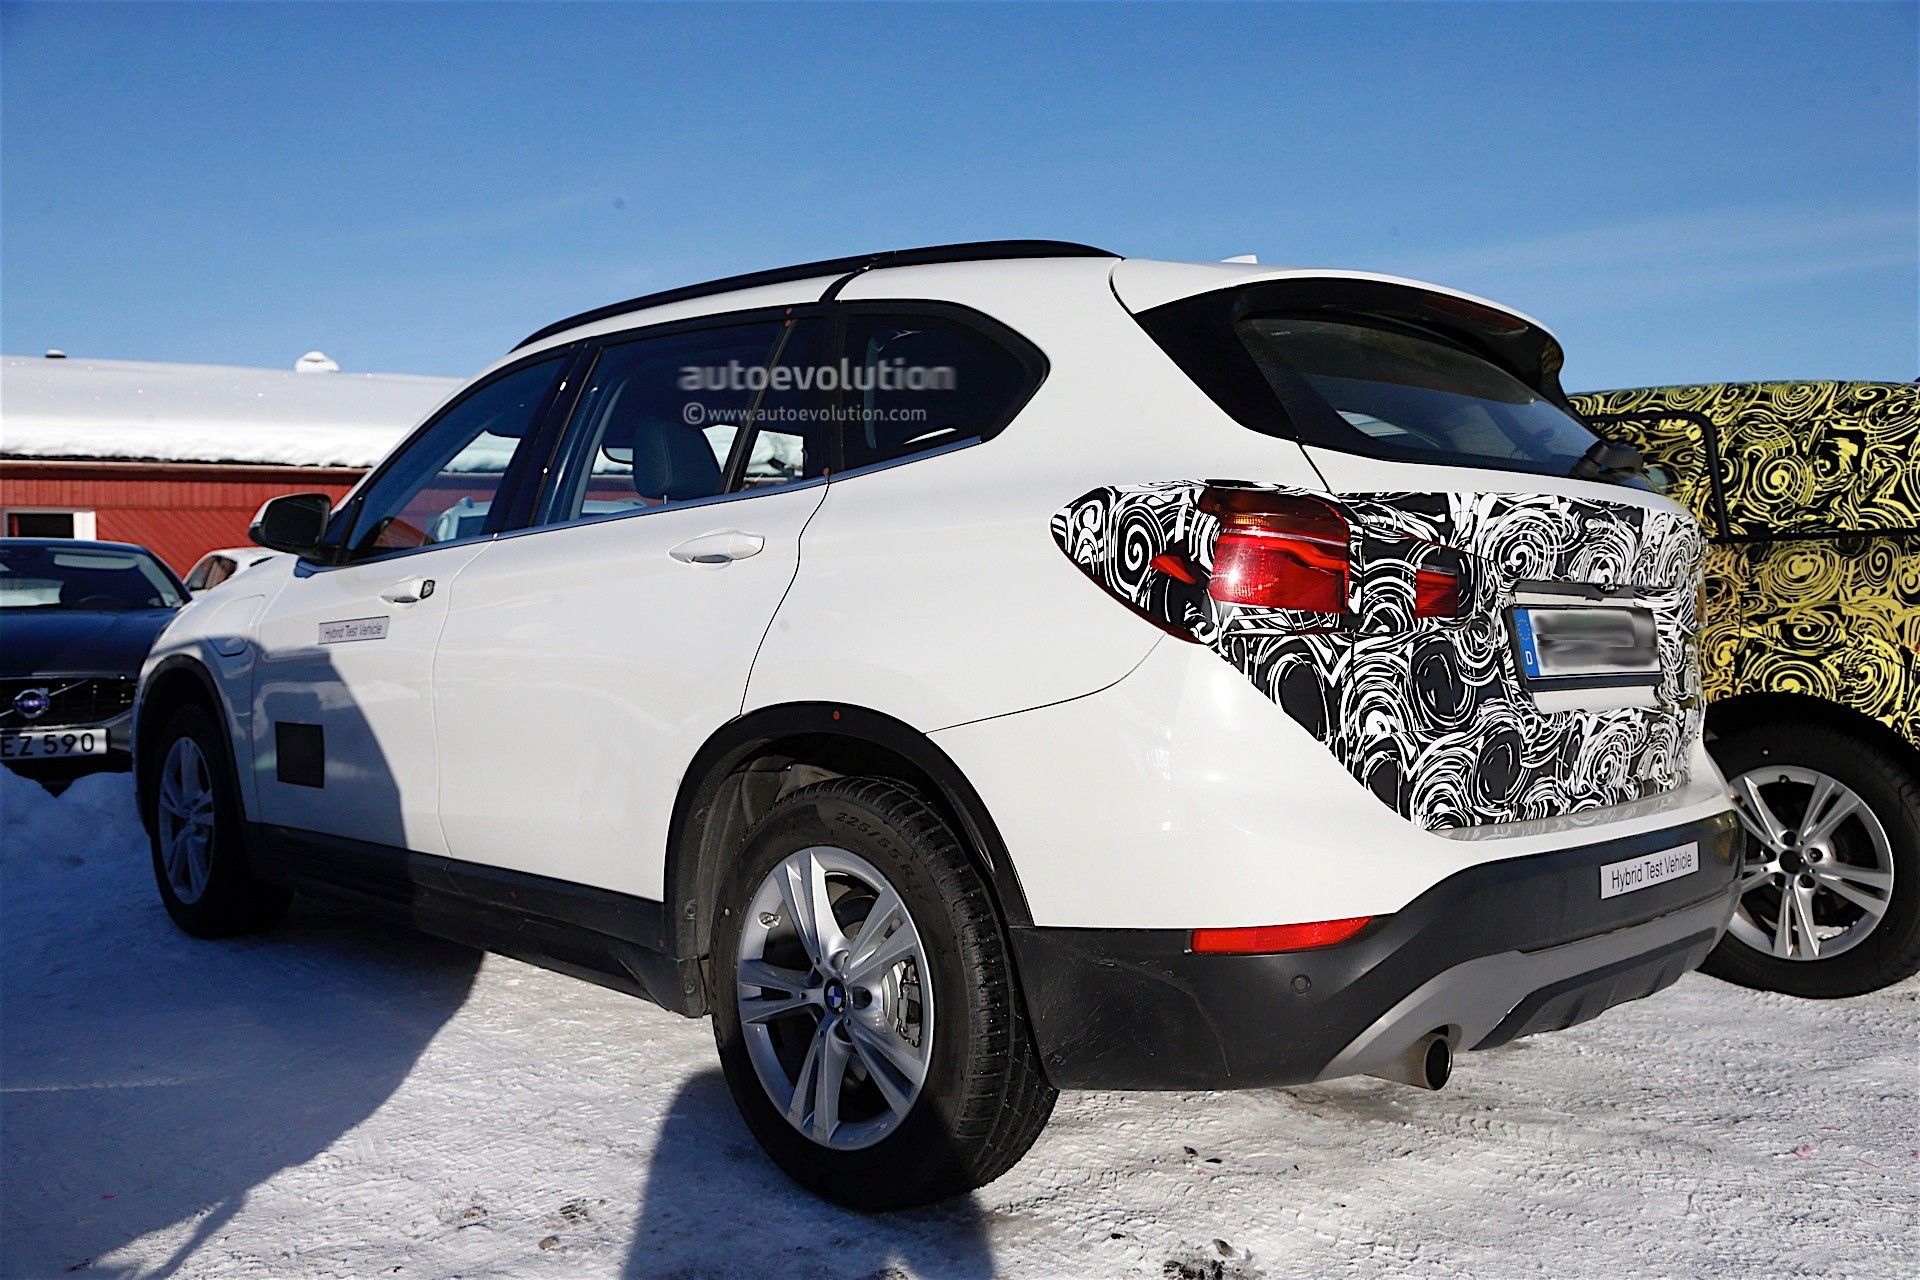 2017 Bmw X1 Xdrive25le Iperformance Plug In Hybrid Revealed In China Autoevolution